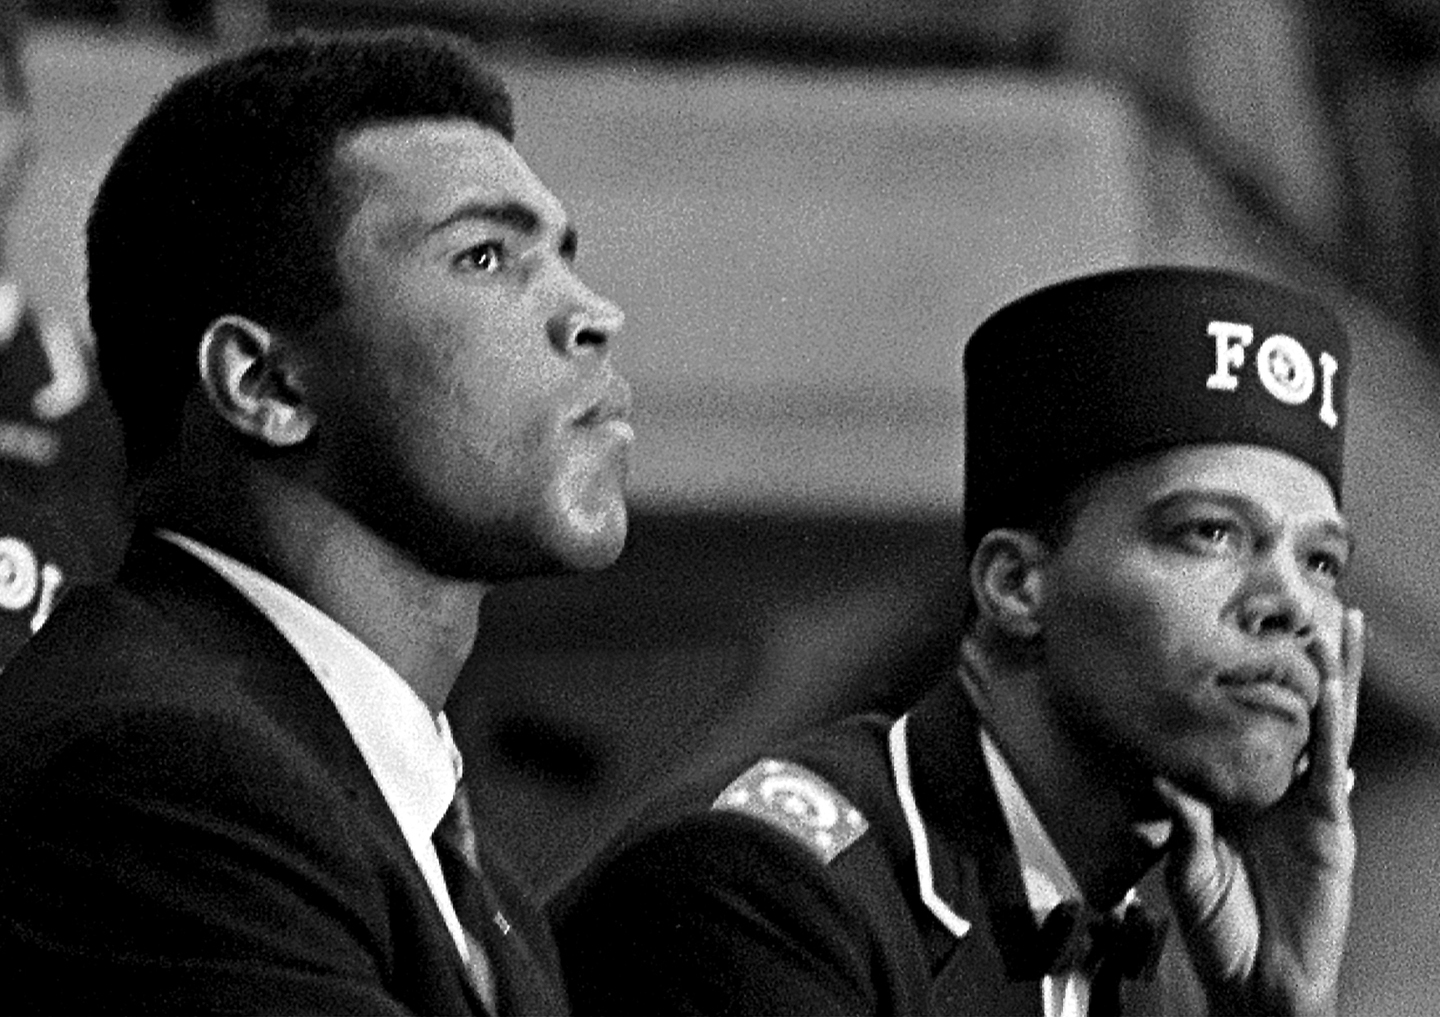 Close-up of American boxer Muhammad Ali (born Cassius Clay) (left) and Nation of Islam leader Louis Farrakhan (born Louis Walcott) as they listen to a speaker during the Saviour's Day celebrations at the International Ampitheatre, Chicago, Illinois, February 27, 1966.